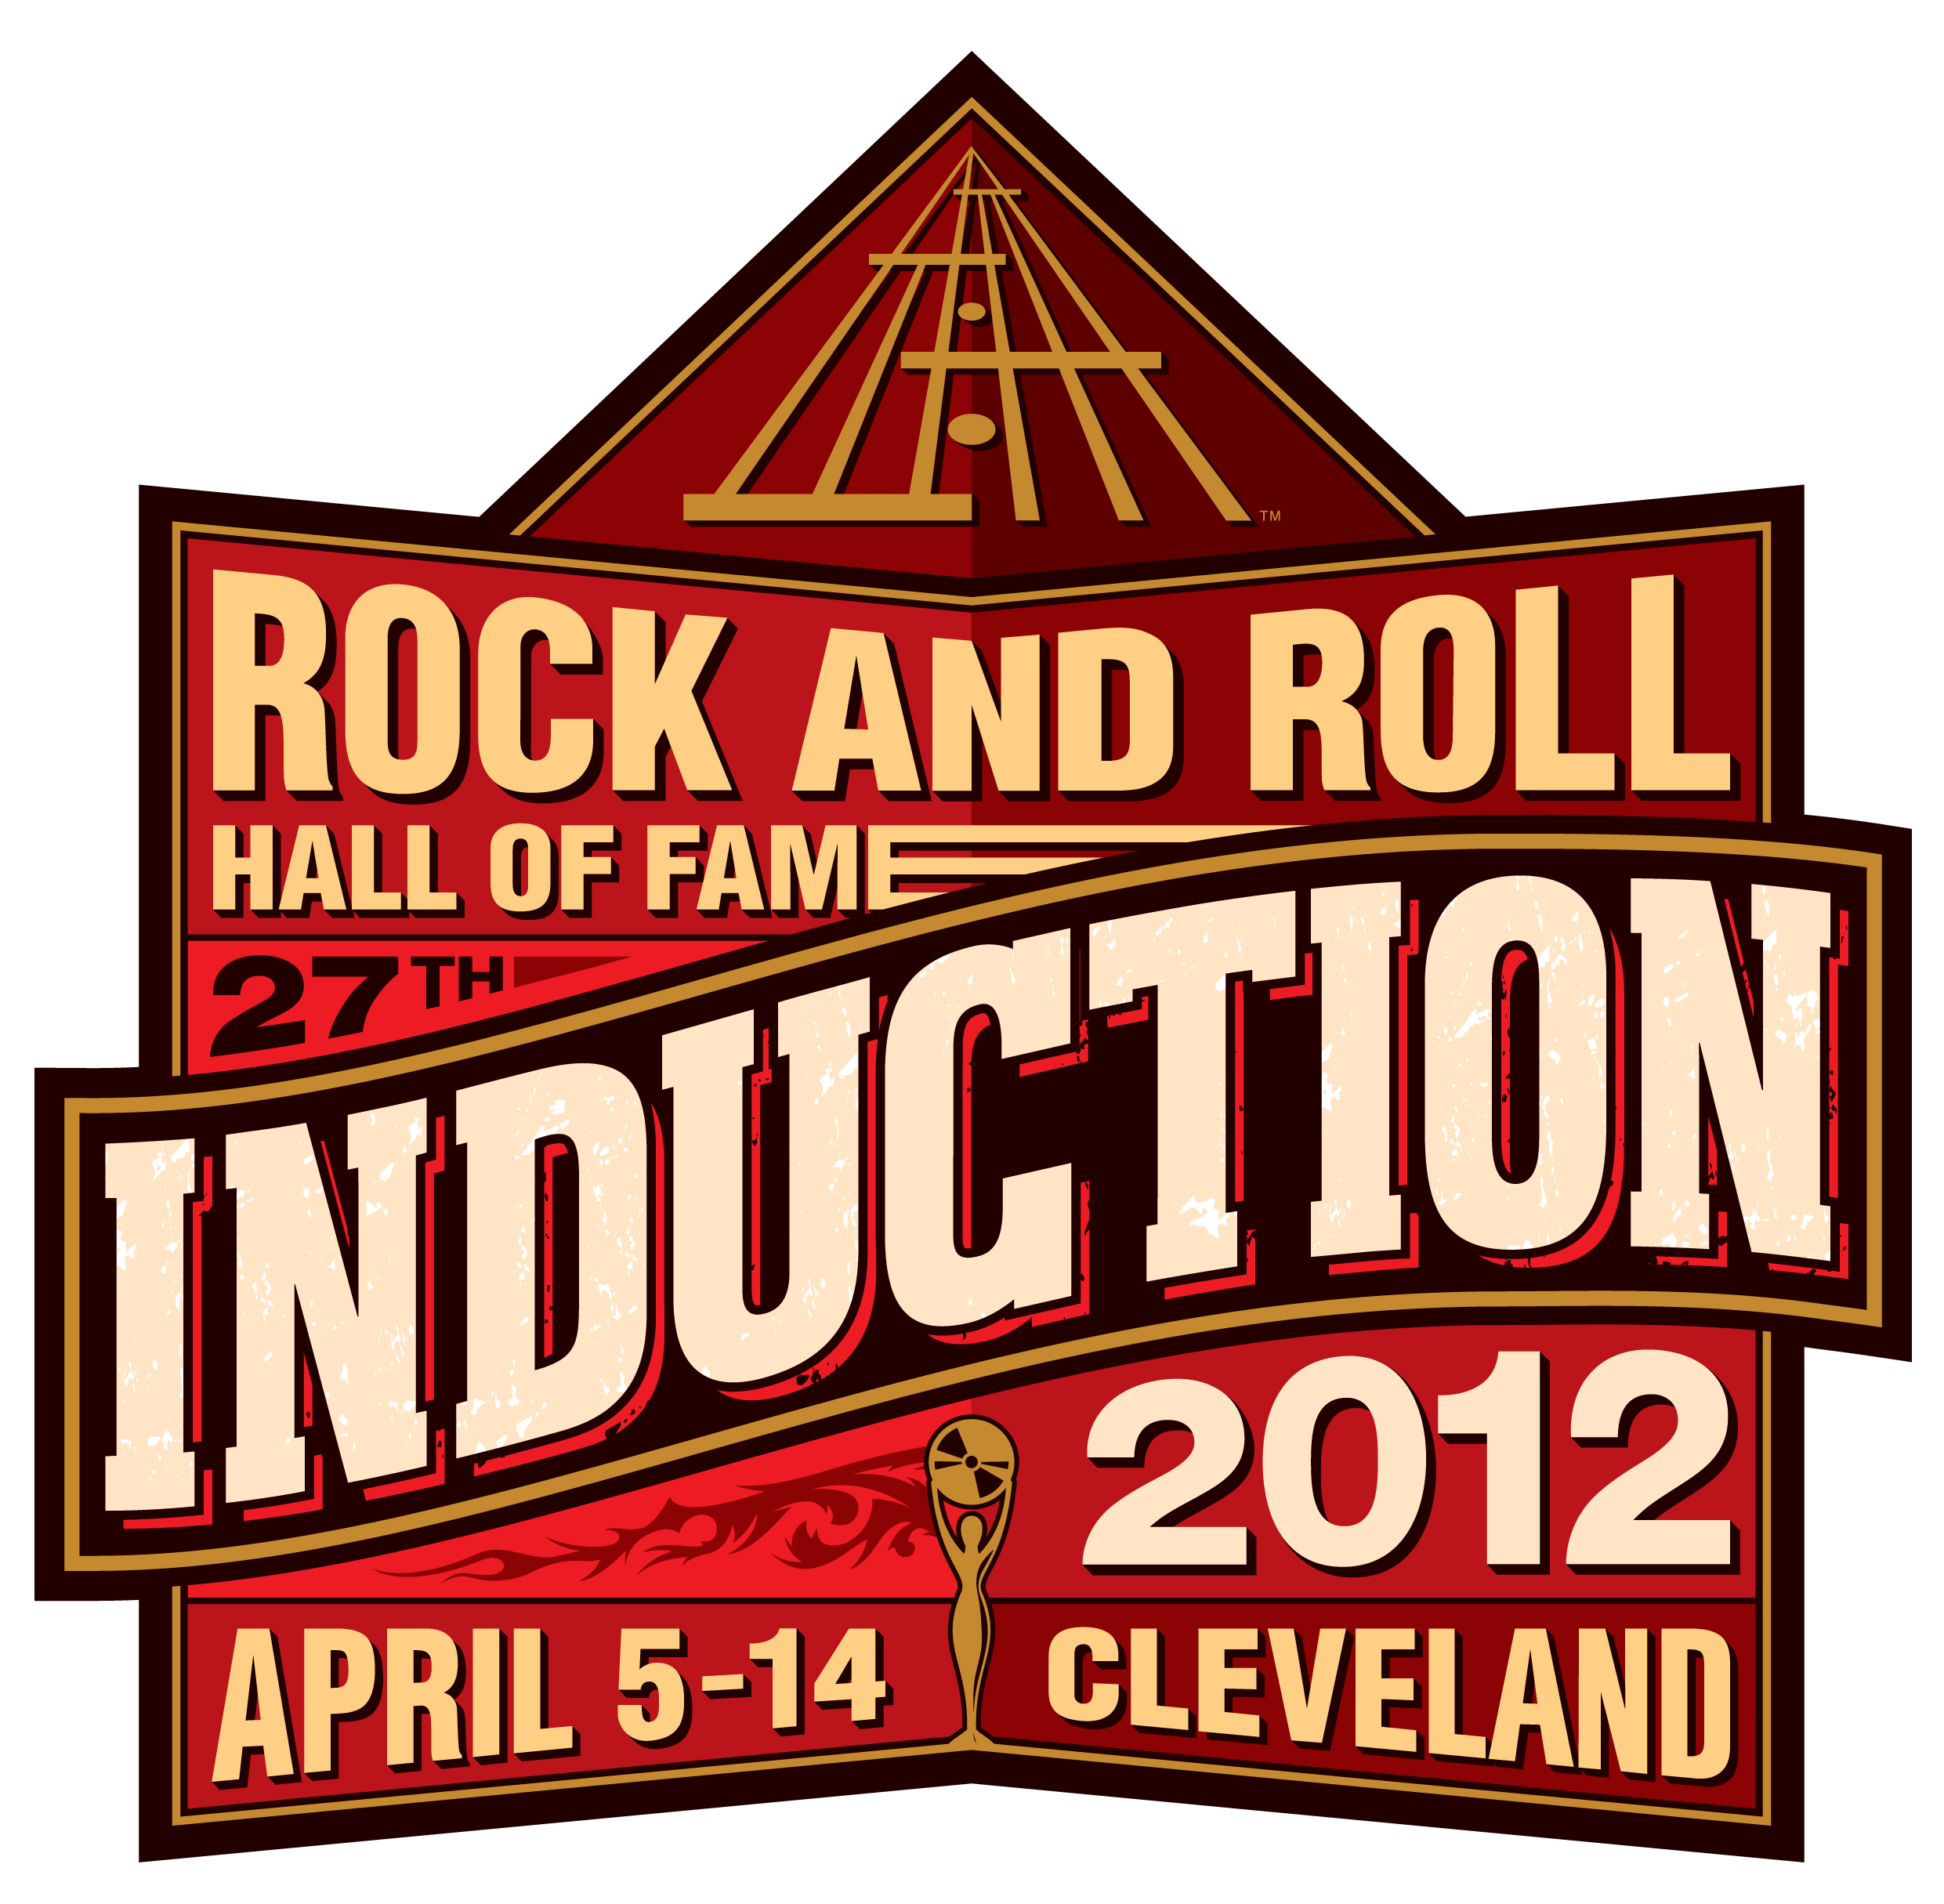 Rock and Roll Hall of Fame Induction Ceremony in Cleveland 2012